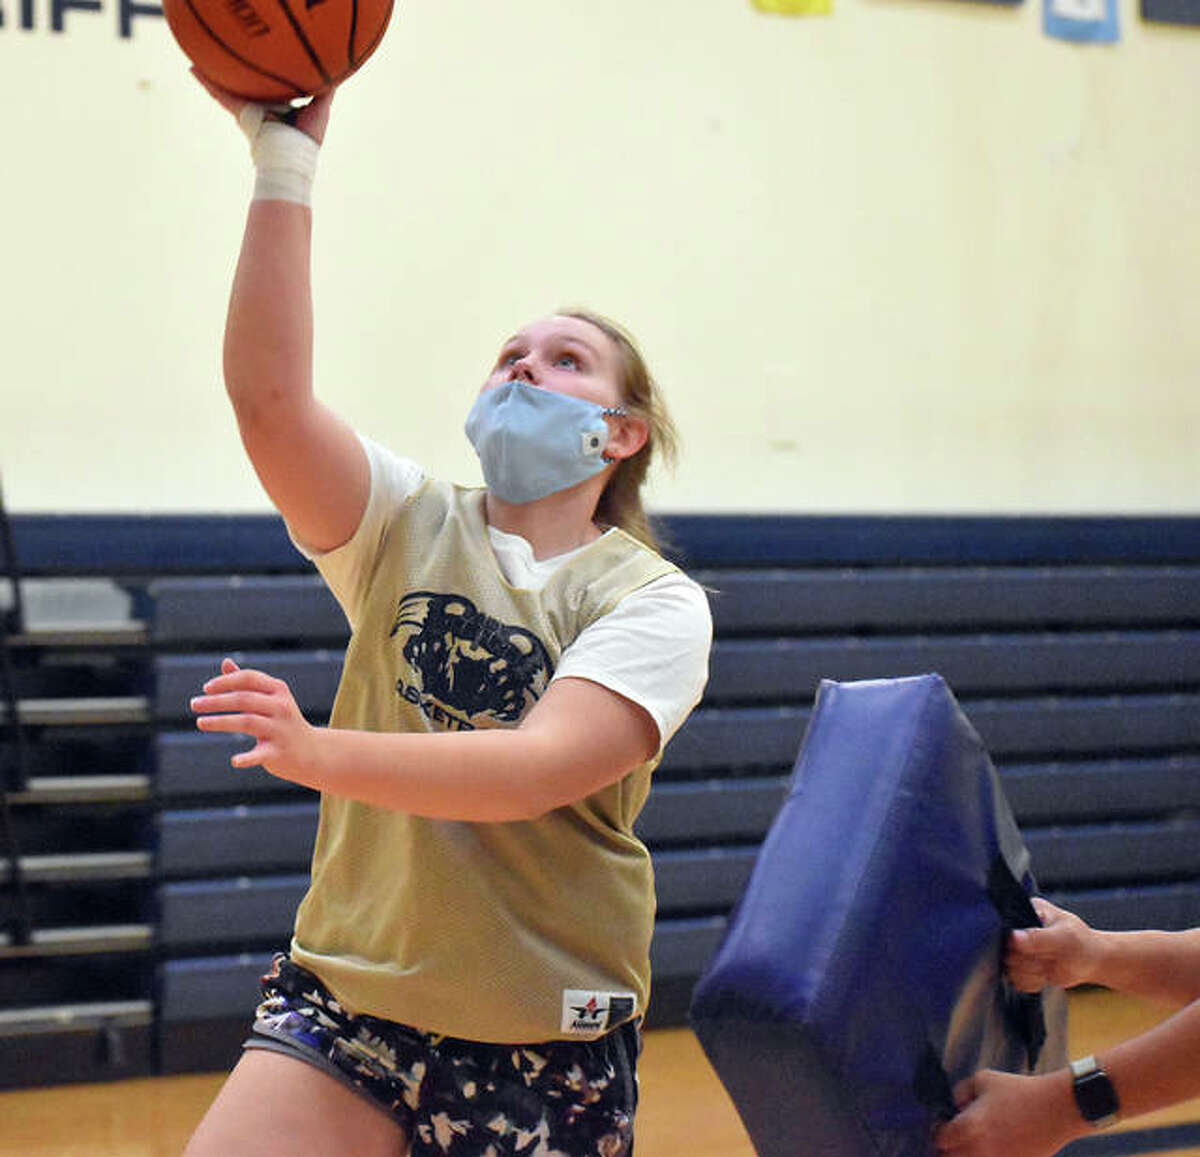 FMCHS senior guard Rachel Maller goes up for a contested layup during Monday's practice.